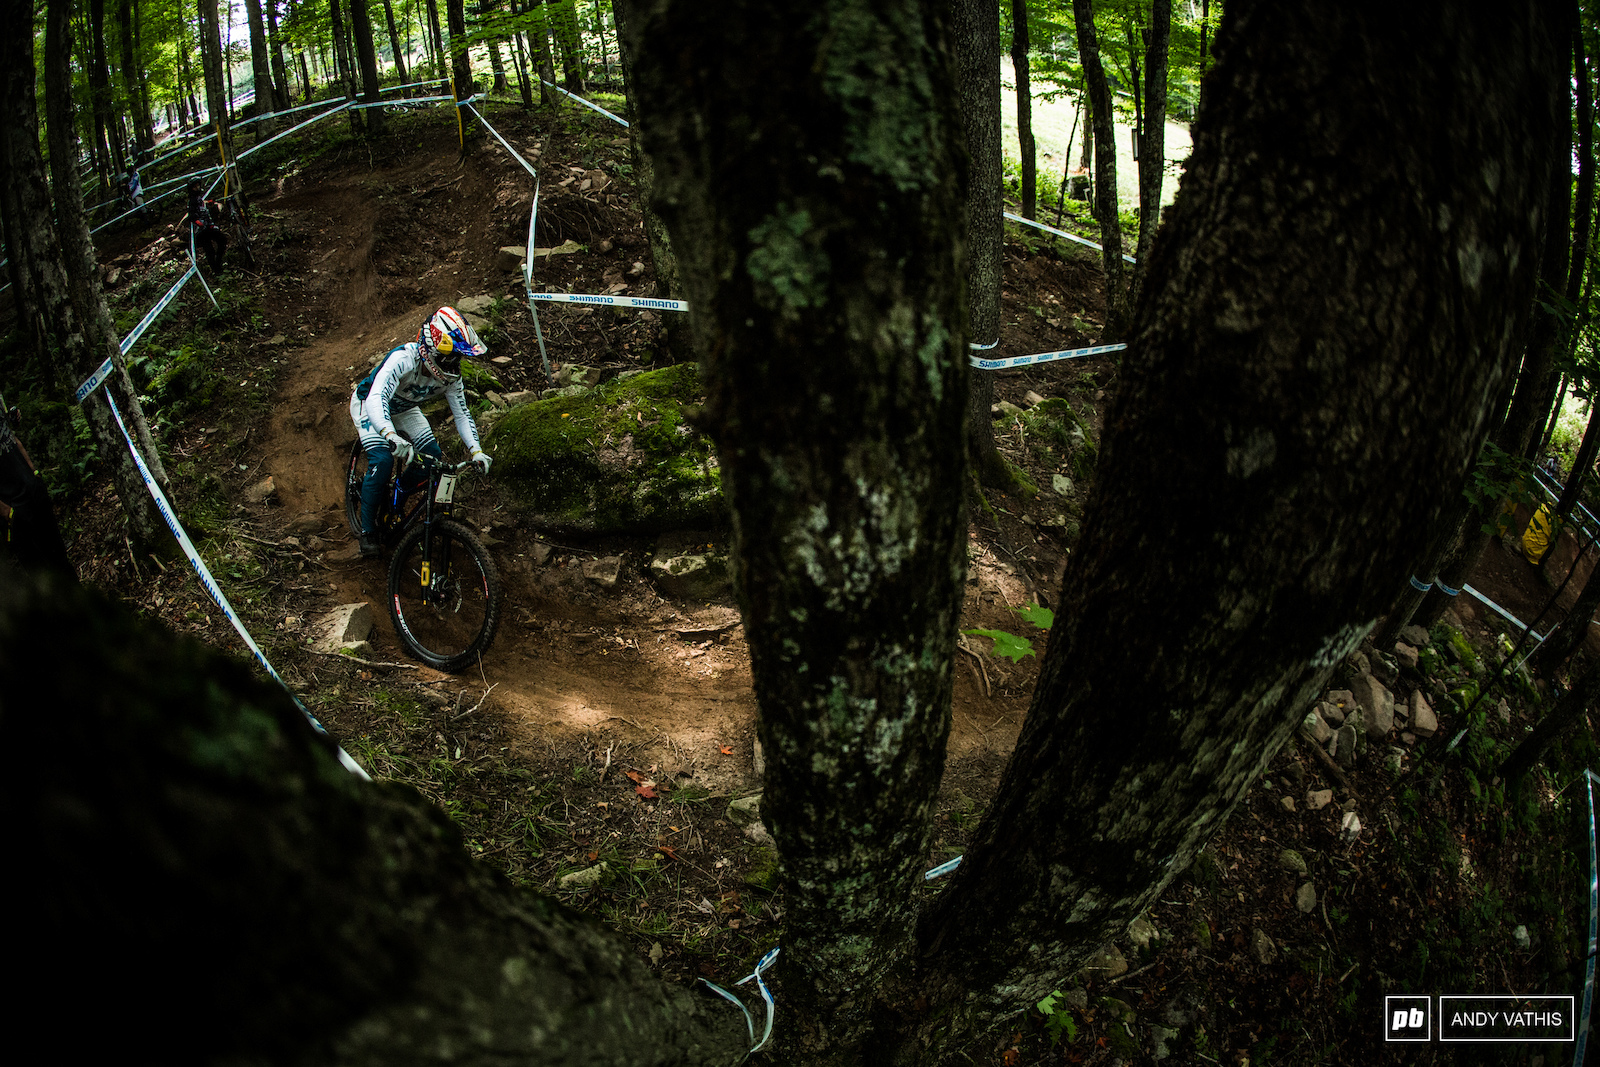 Loic Bruni lining up the tricky exit out into the berms.